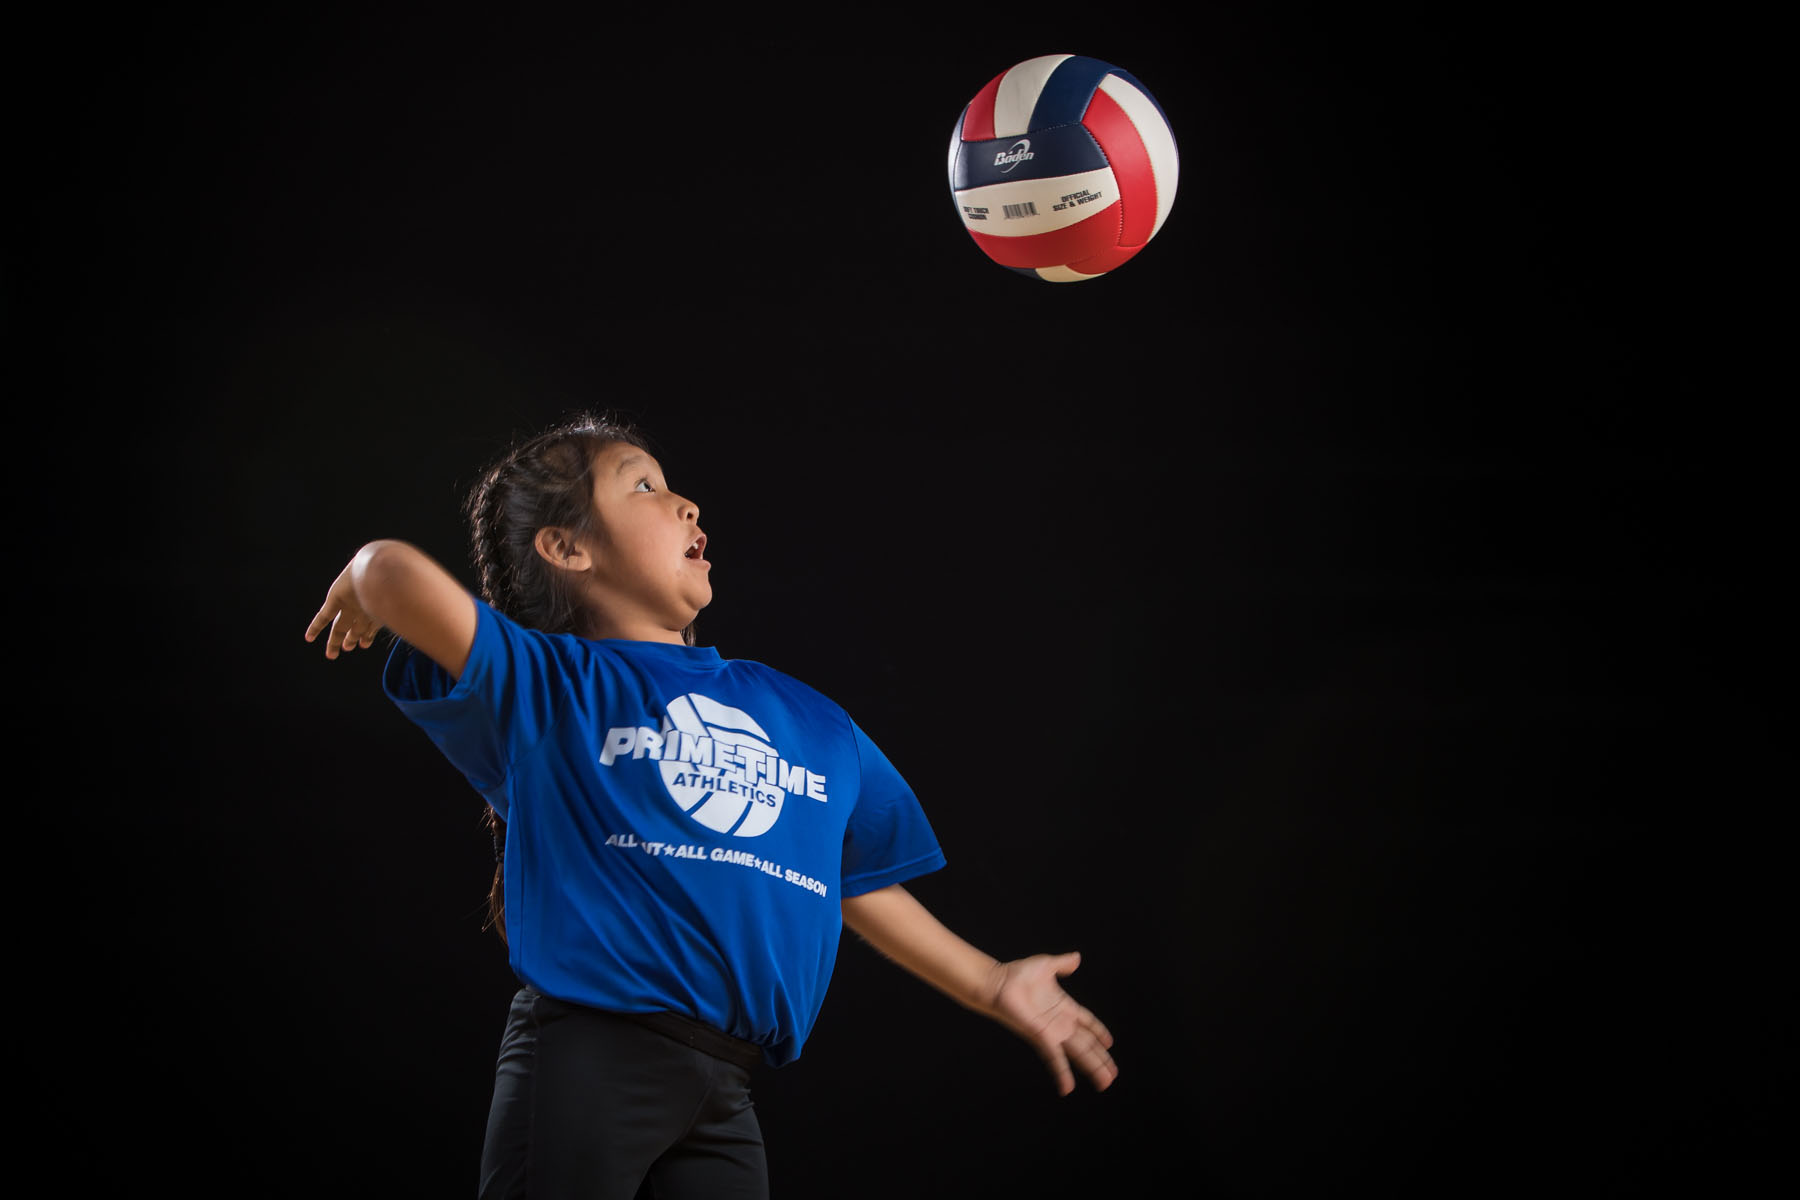 Prime Time Athletics Flagstaff volleyball team photo on February 23, 2020. Photo by Sean Openshaw Photography.